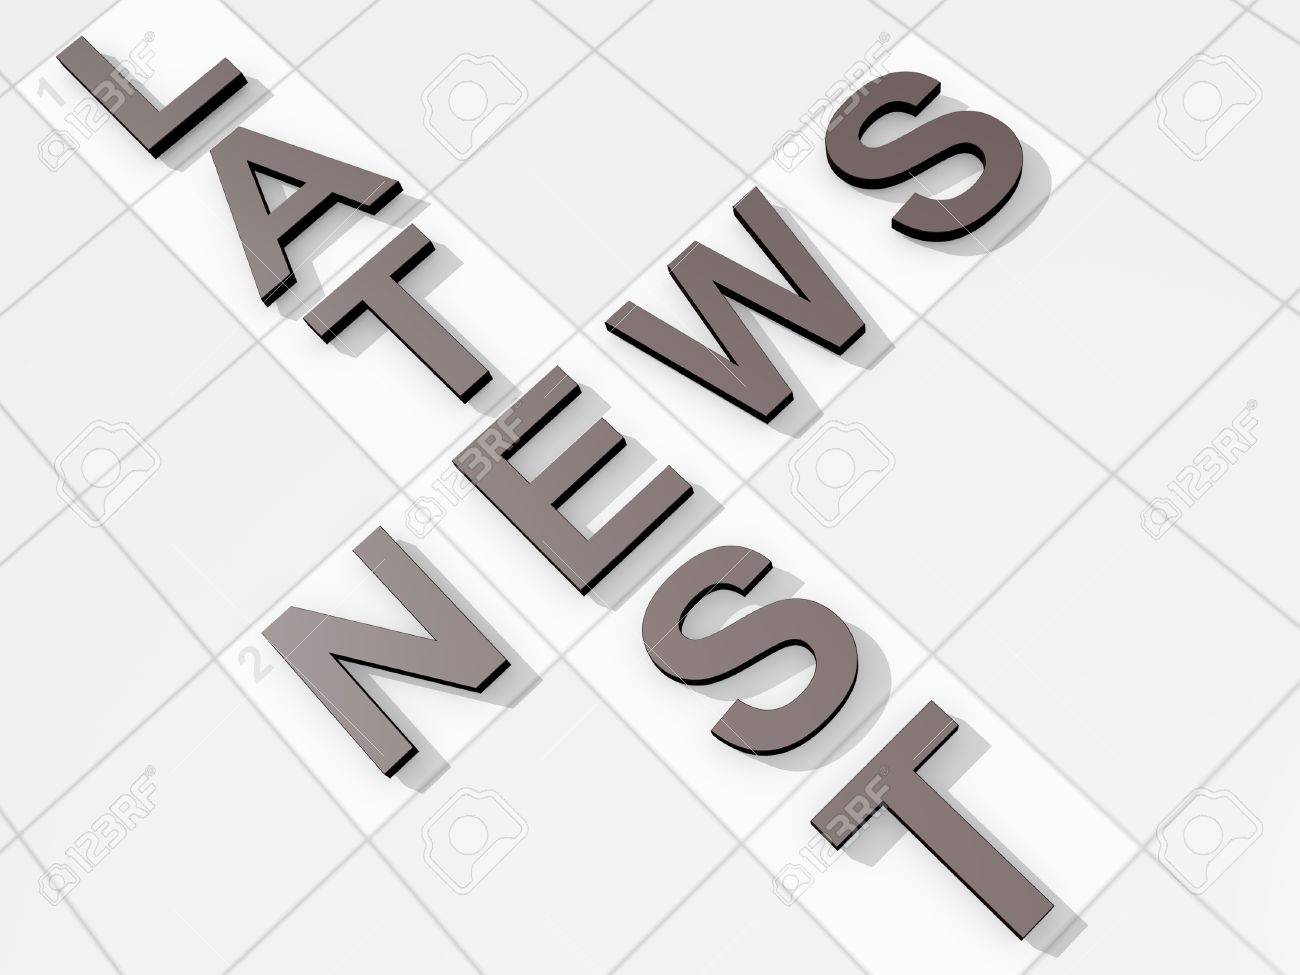 The Words Latest News On A Feint Crossword Background Stock Photo 1300x975